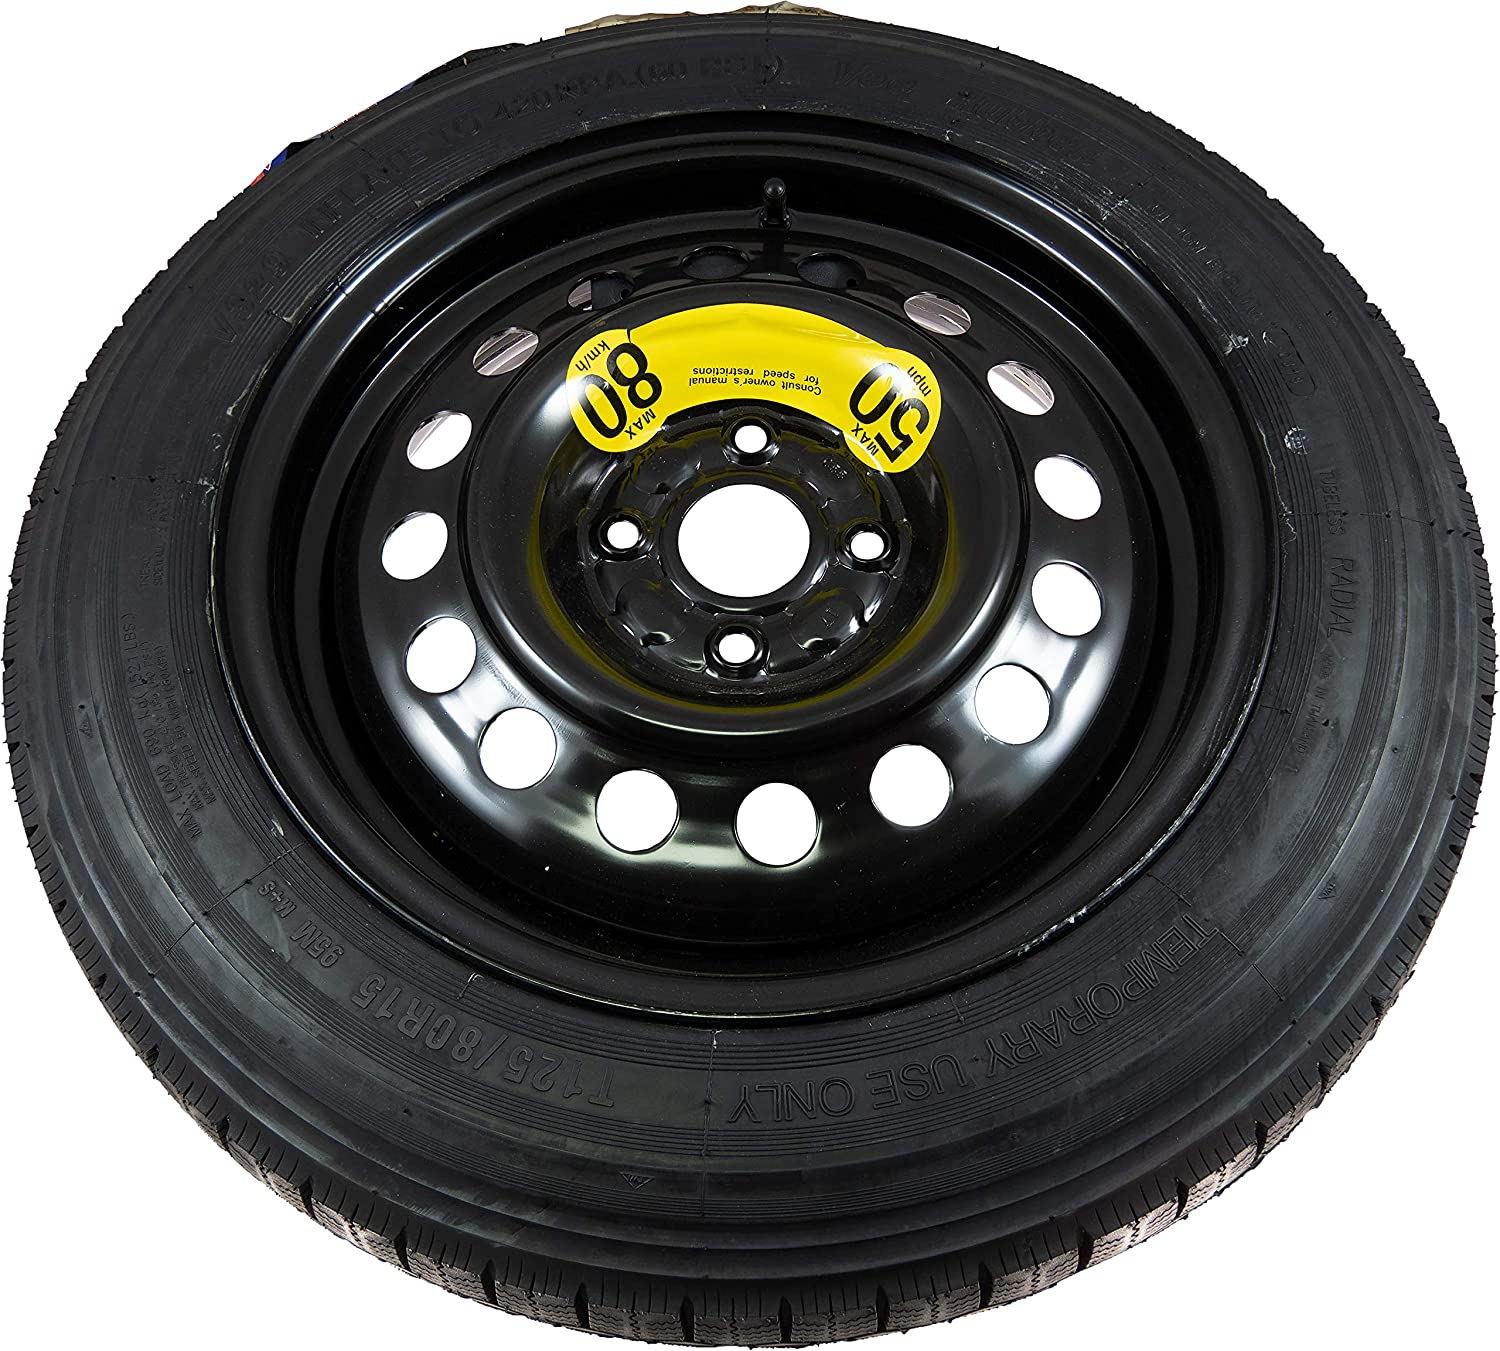 APDTY 138596 Spare Tire And Wheel Only 1RF40AC900